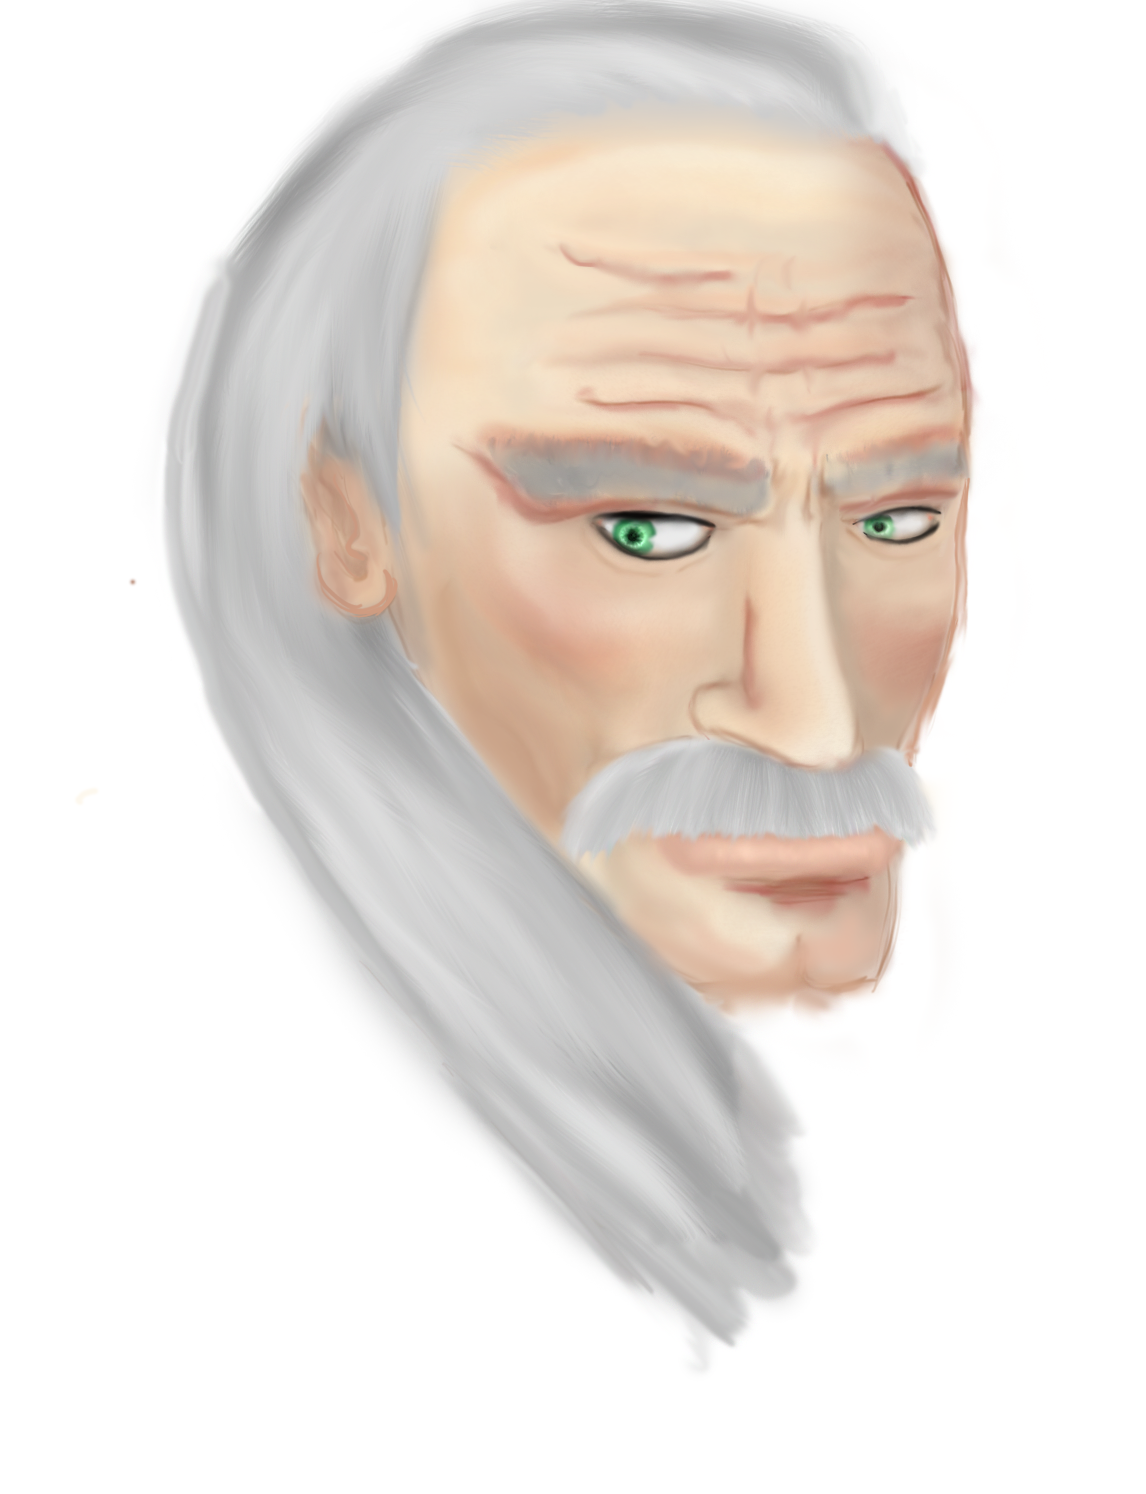 Revolver Ocelot by Puipui